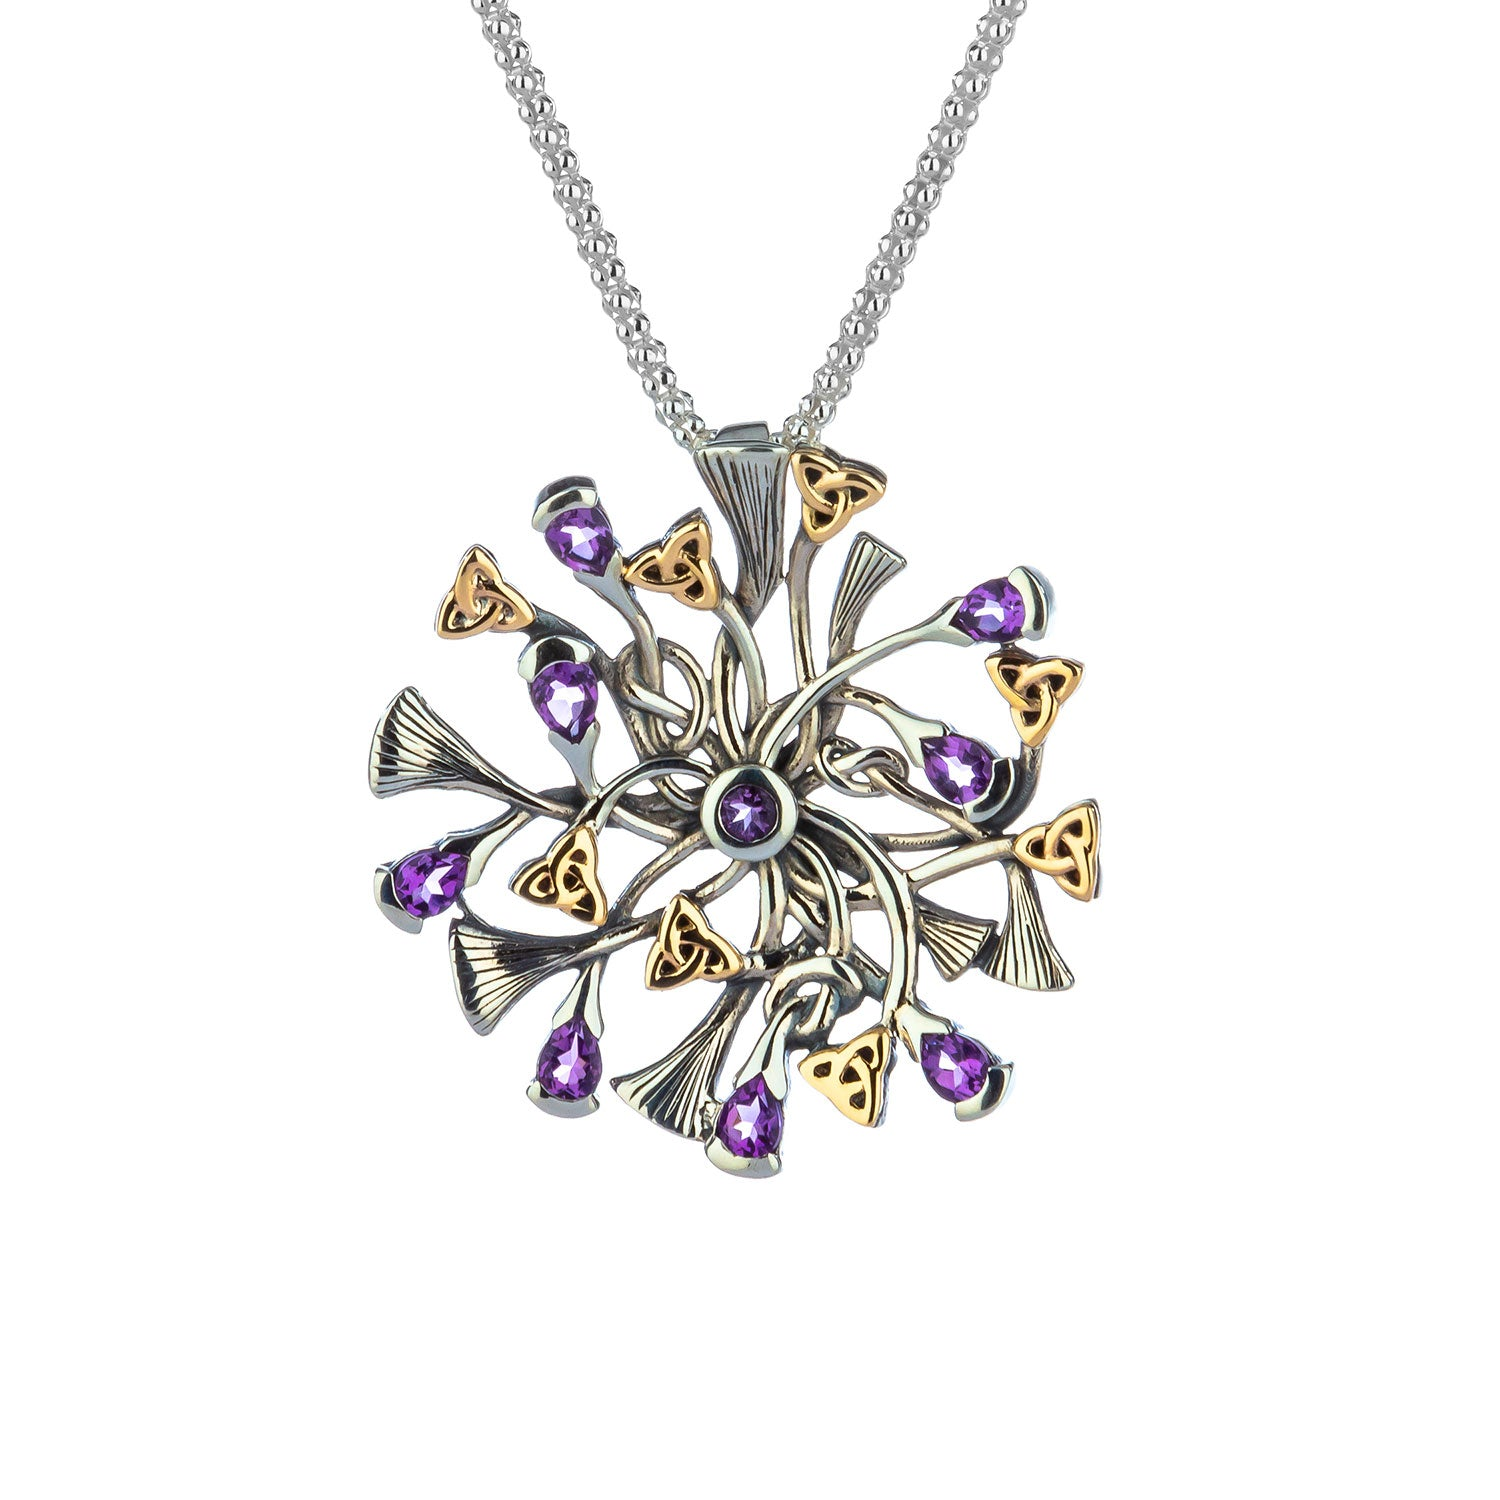 Pendant 10k Rhapsody with 3mm Pear Shaped Amethyst Small Pendant from welch and company jewelers near syracuse ny